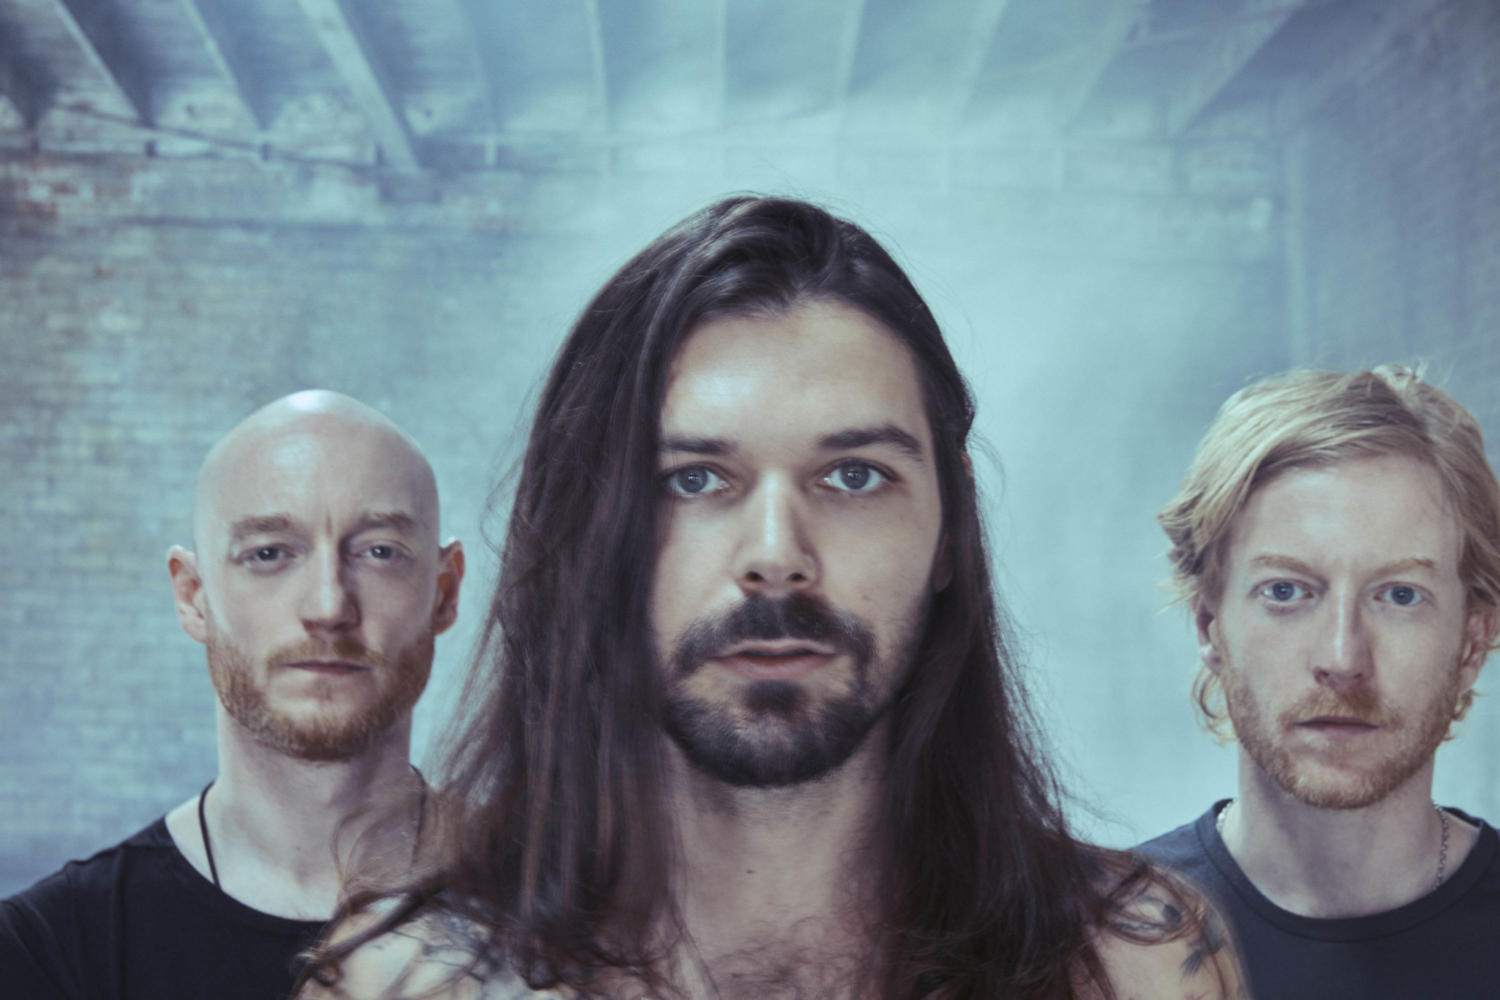 Hear Biffy Clyro cover Frightened Rabbit's 'The Modern Leper', from upcoming covers album